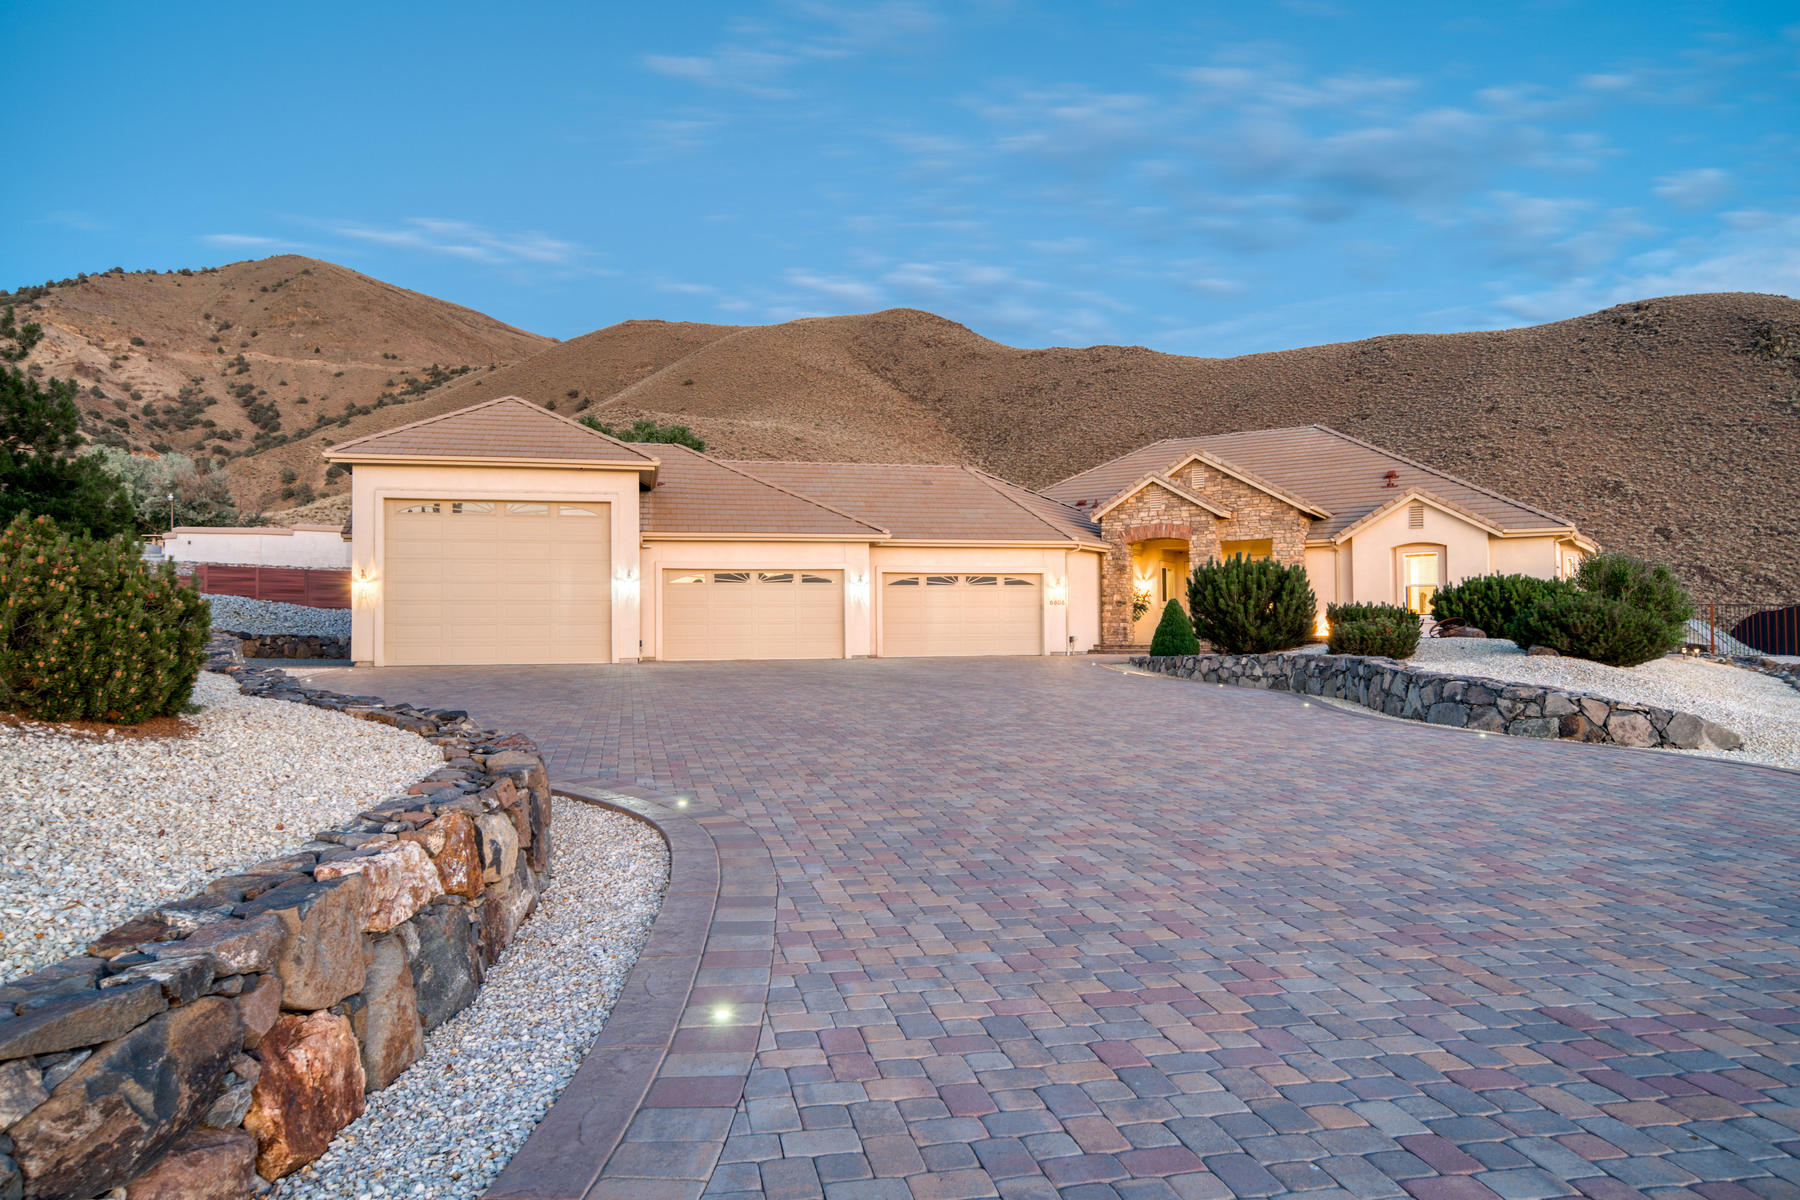 Additional photo for property listing at Flawless Home in Hidden Valley 6605 Loma Vista Lane Reno, Nevada 89502 United States